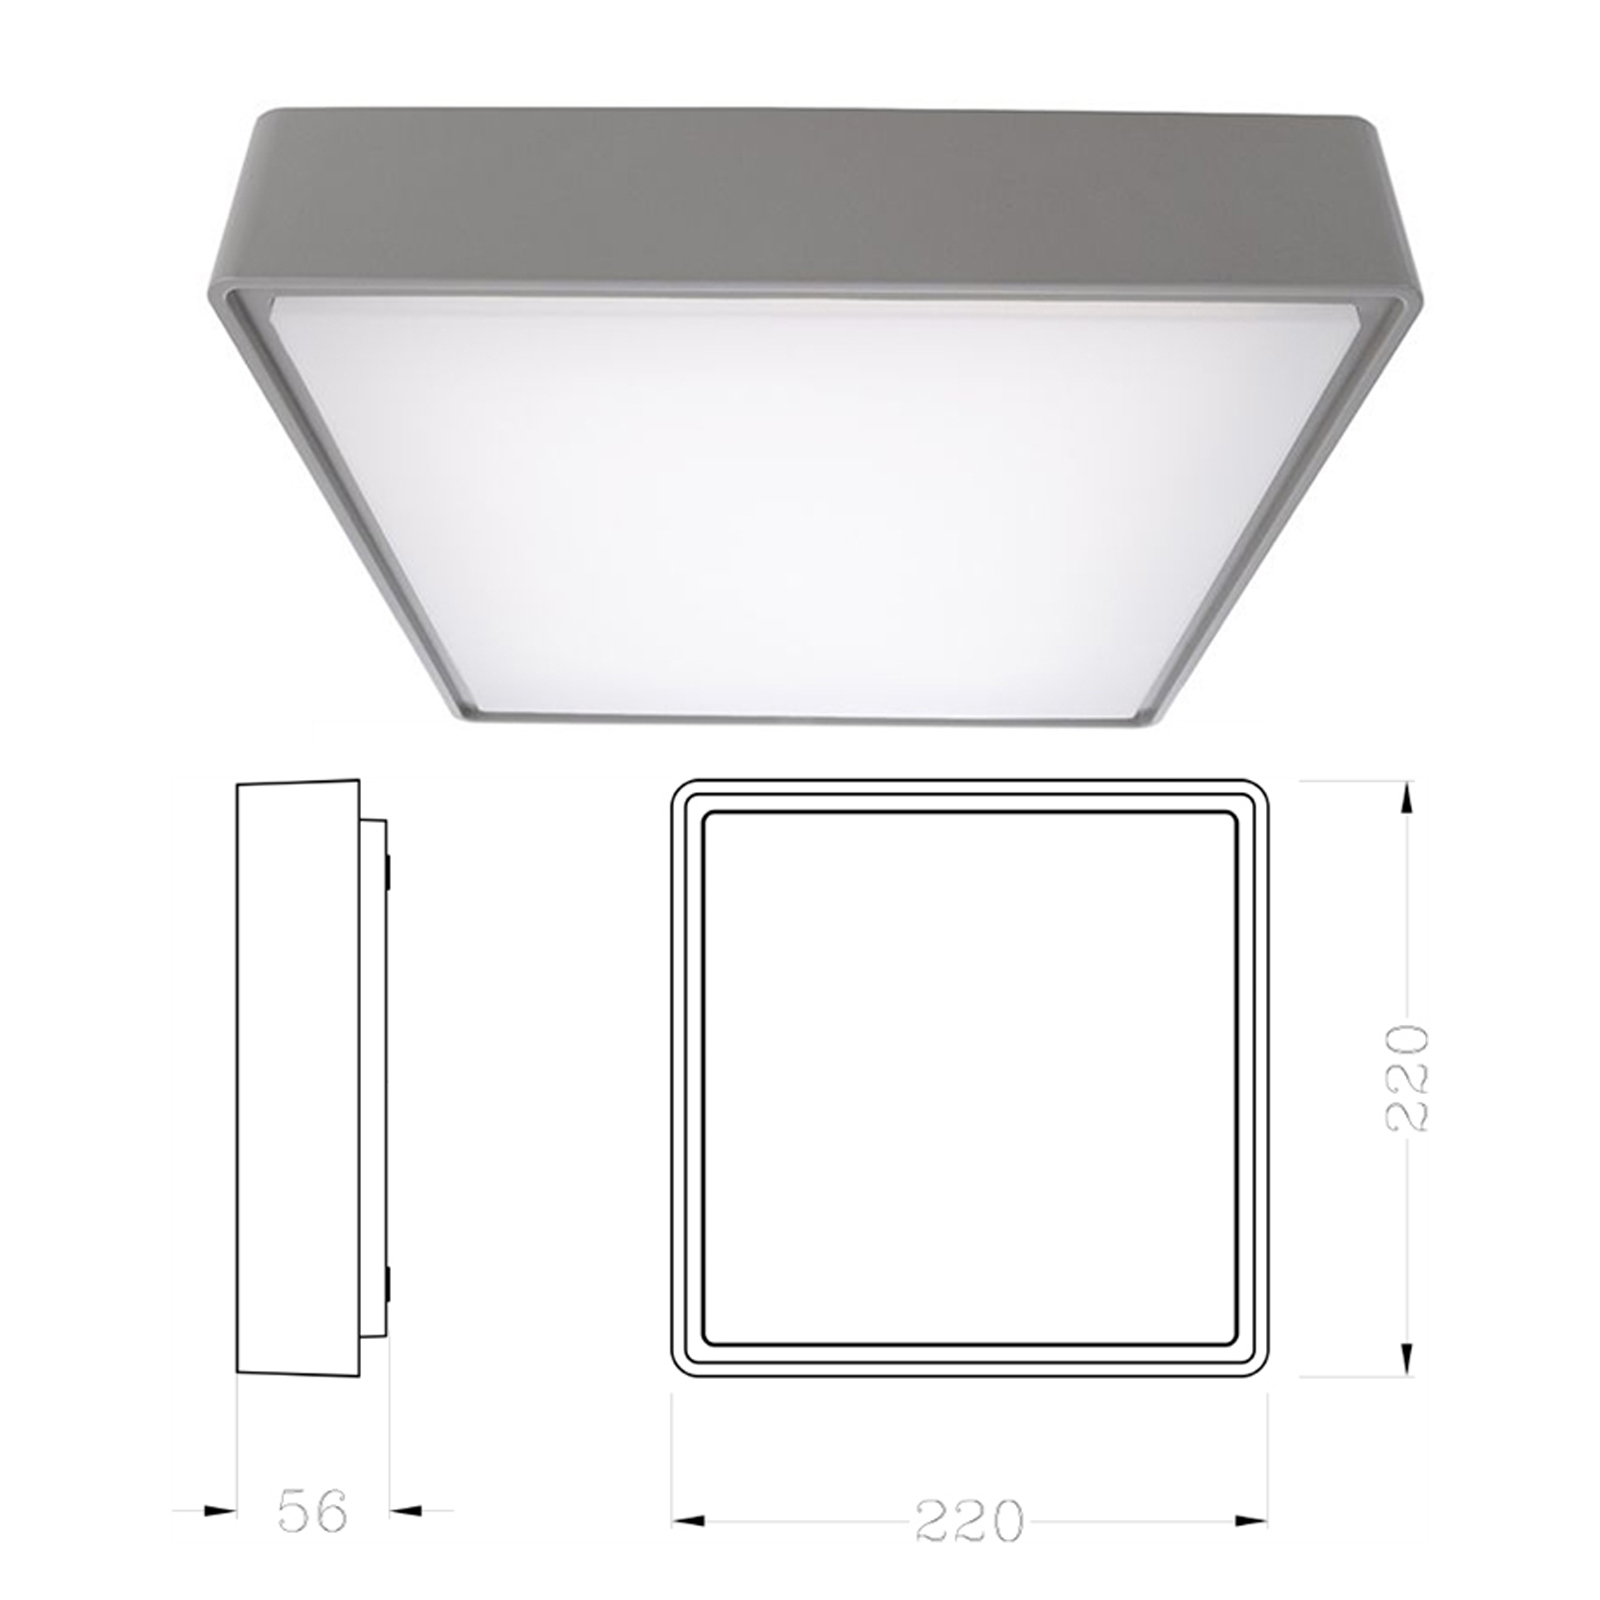 Ceiling light with external led 10w lamp ceiling sconce light wall IP65 690 lumens